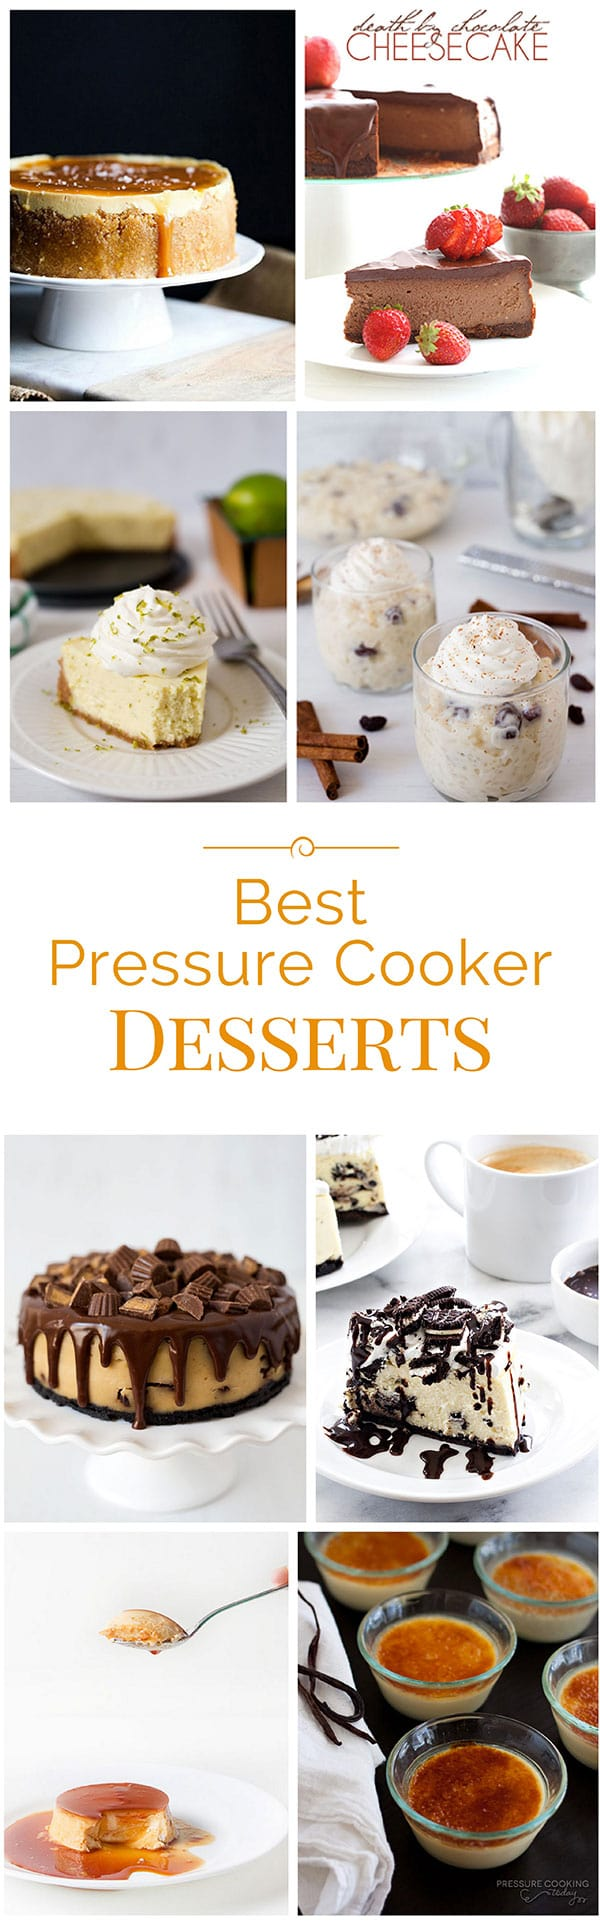 Pressure cooker desserts are easy to make, take less time than baking in an oven, and they taste delicious, too! These are the best pressure cooker dessert recipes you will find anywhere! These easy dessert recipes can be made in any brand of electric pressure cooker or multi-cooker, like an Instant Pot.